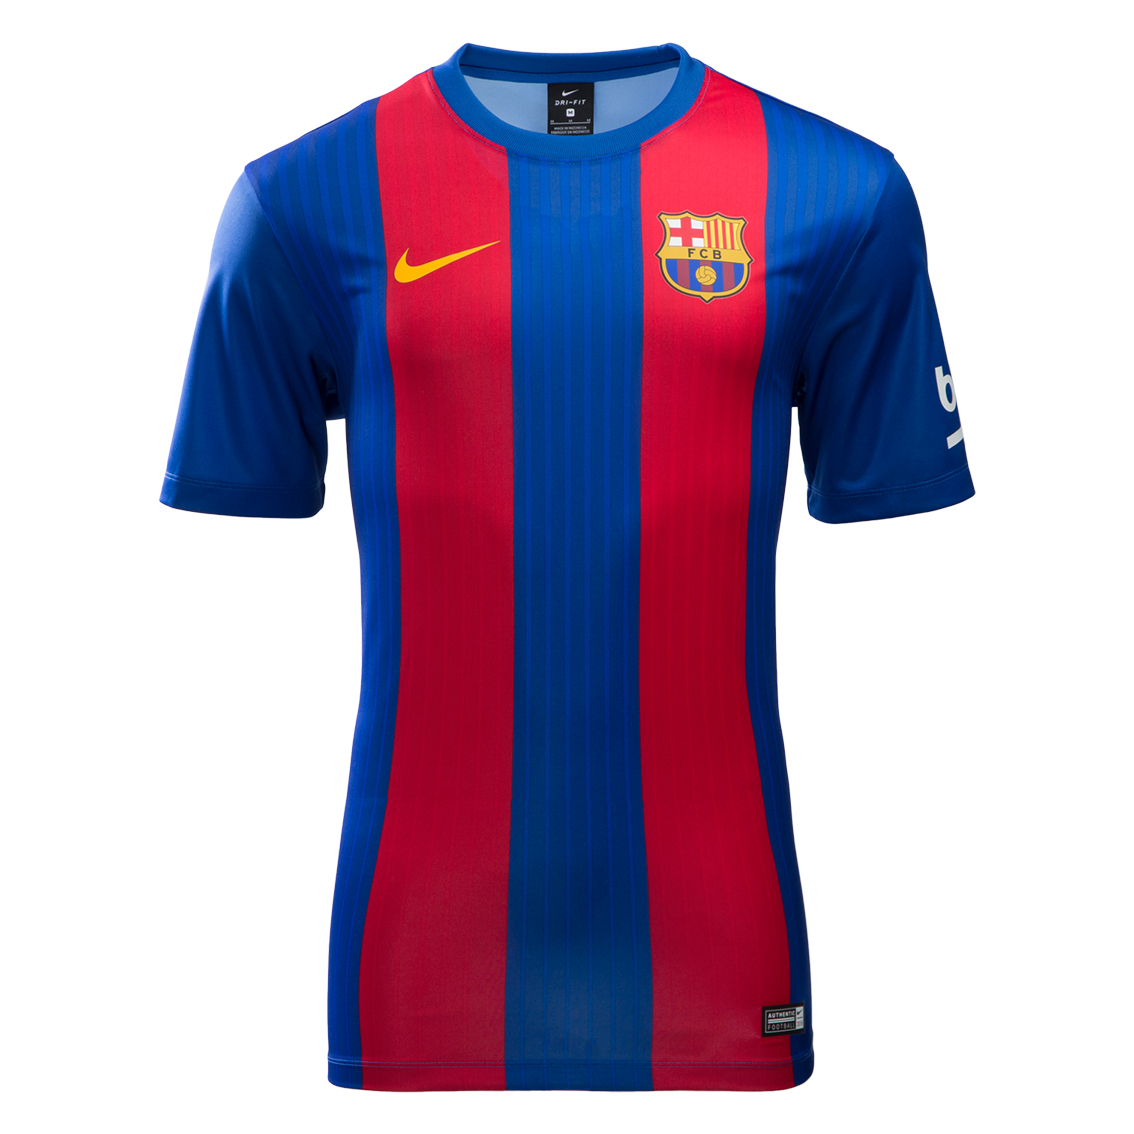 bbfb6a96a37 Nike FC Barcelona Home Supporters 2016-17 Jersey - Soccer Shop Barcelona FC  Merchandise - Superfanas.lt